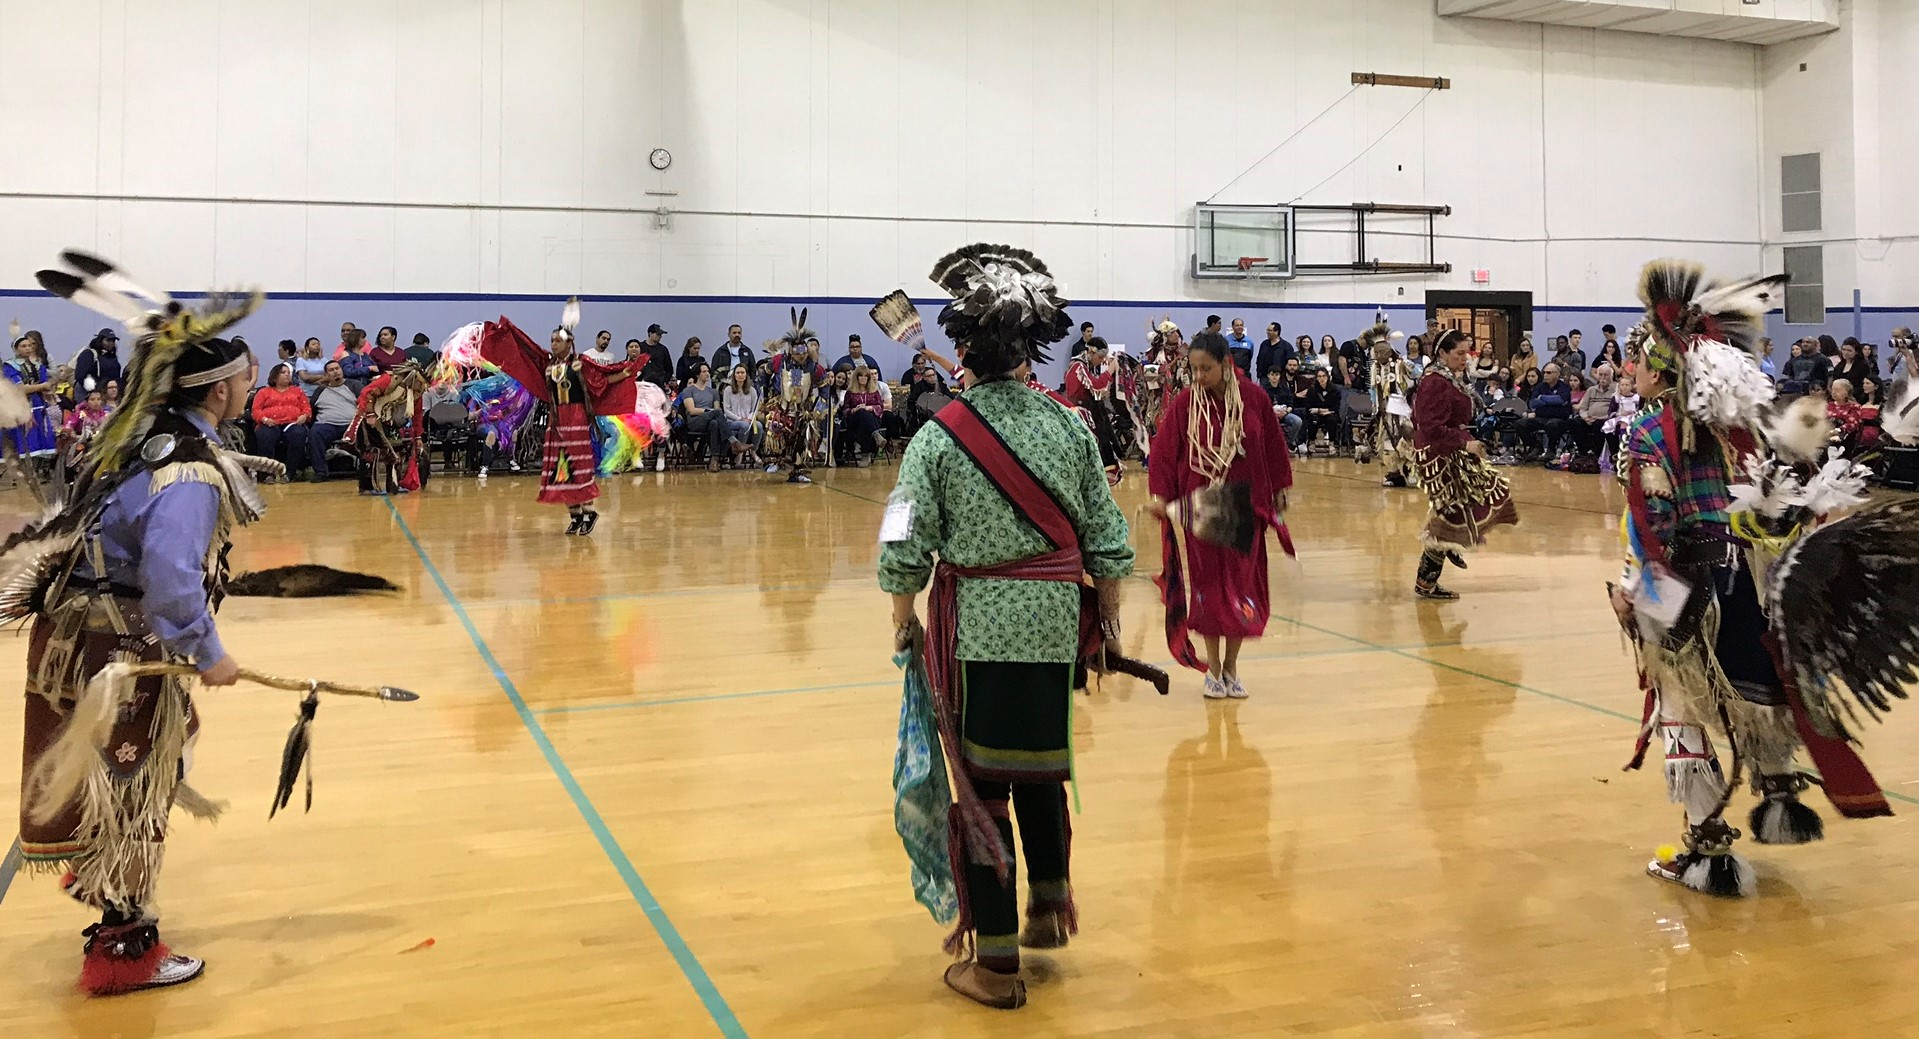 Final round contest during the Red Dress Special. Teen and adult men's traditional dancers standing guard around the parameter.